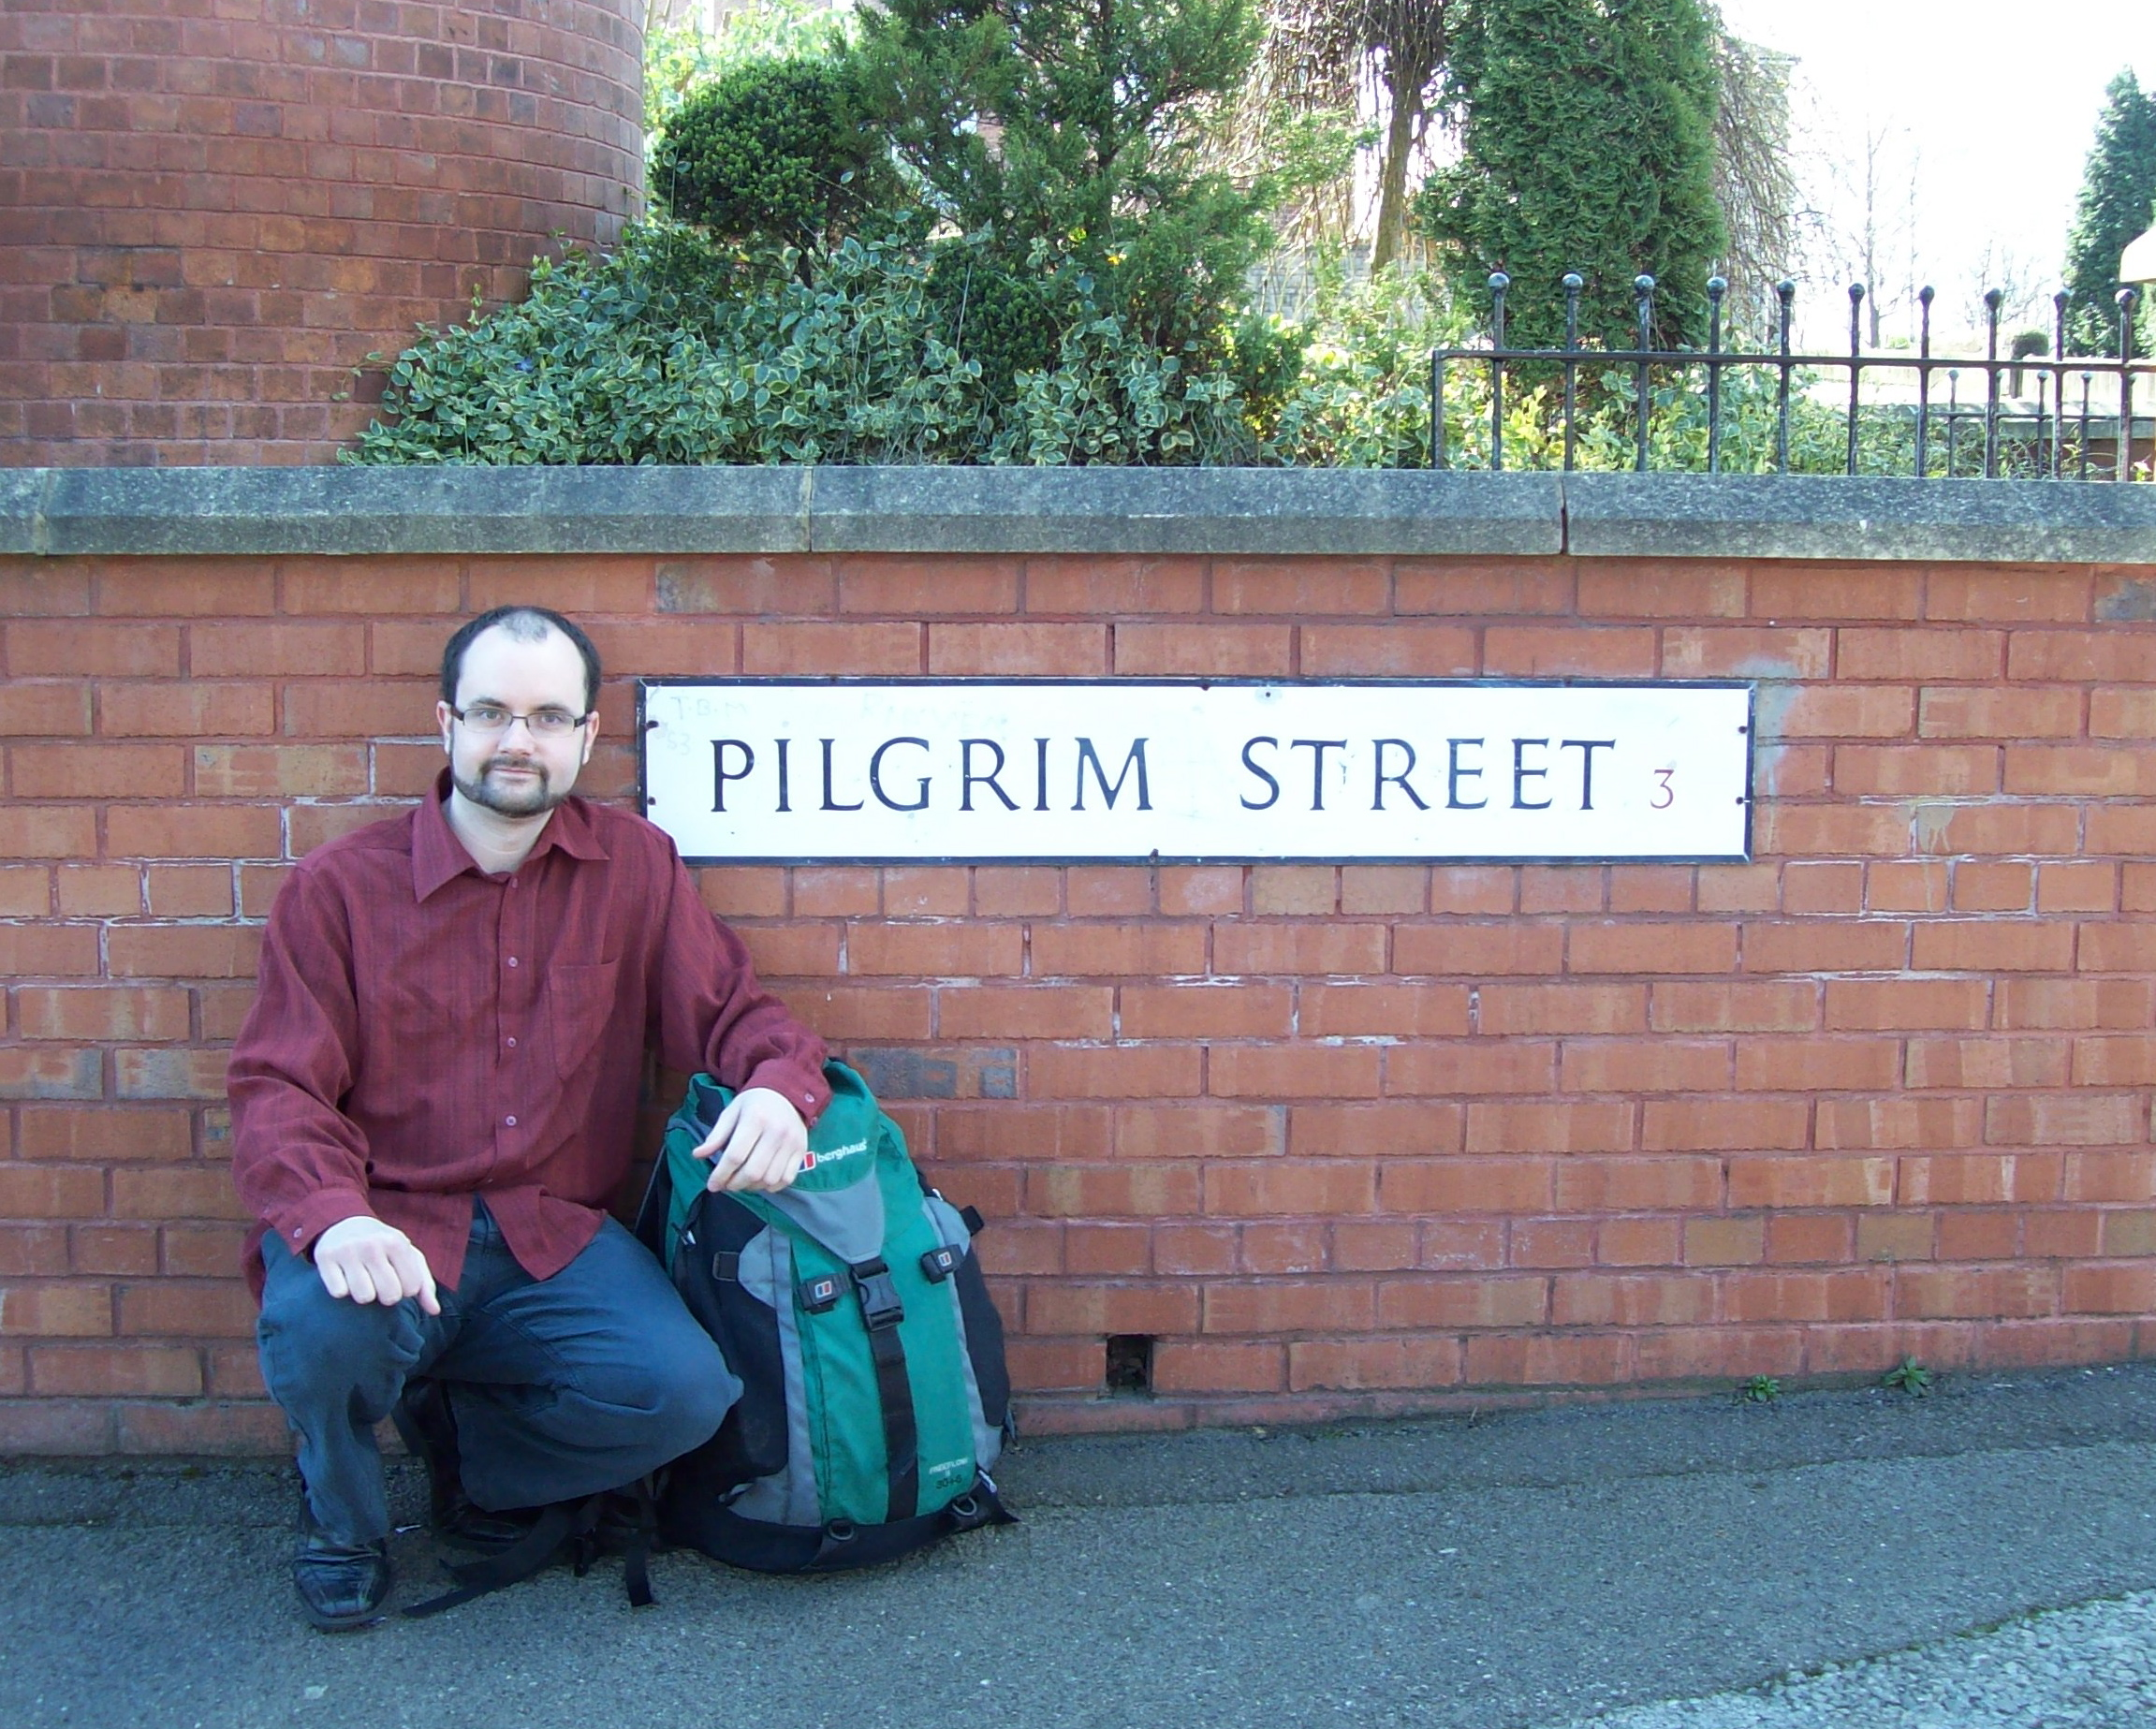 Symon Hill crouched by a sign for Pilgrim Street